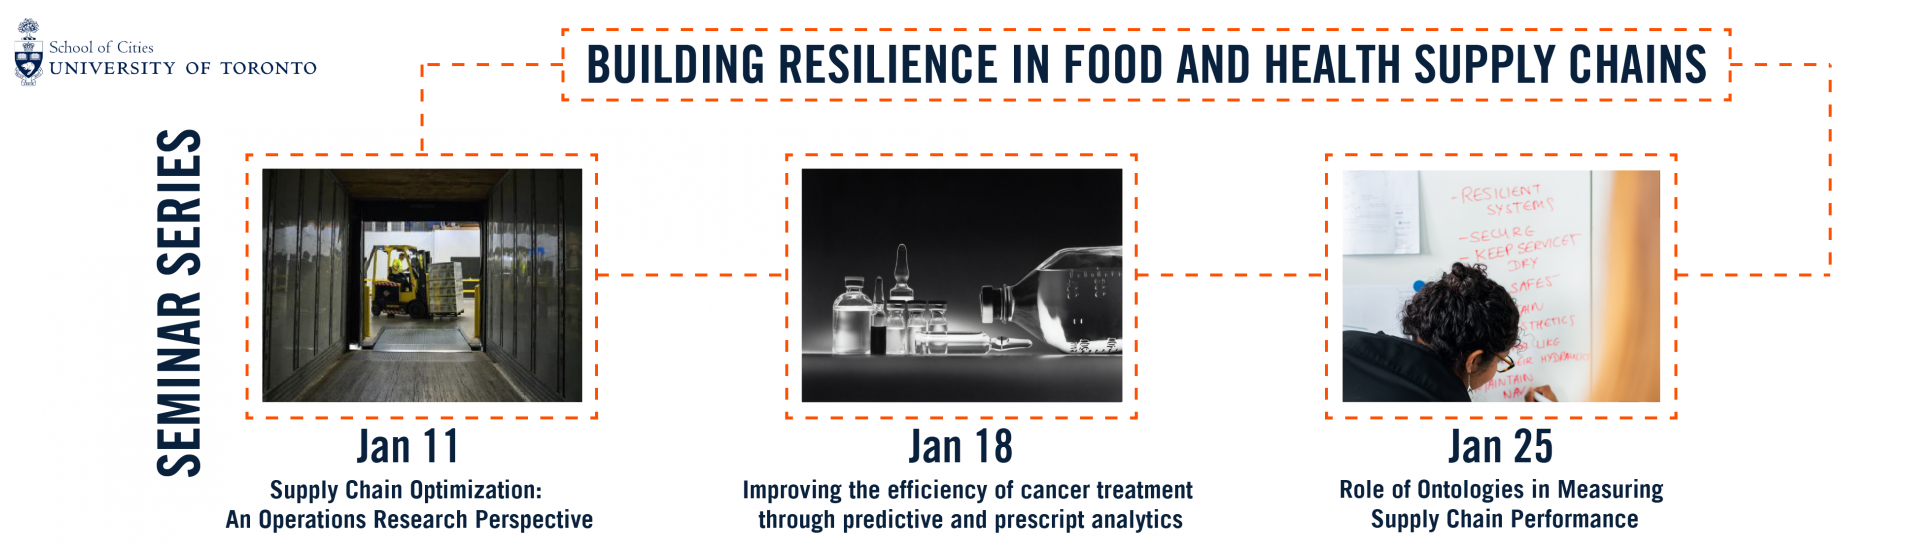 Building Resilience in Food and Health Supply Chains is a seminar series by the School of Cities